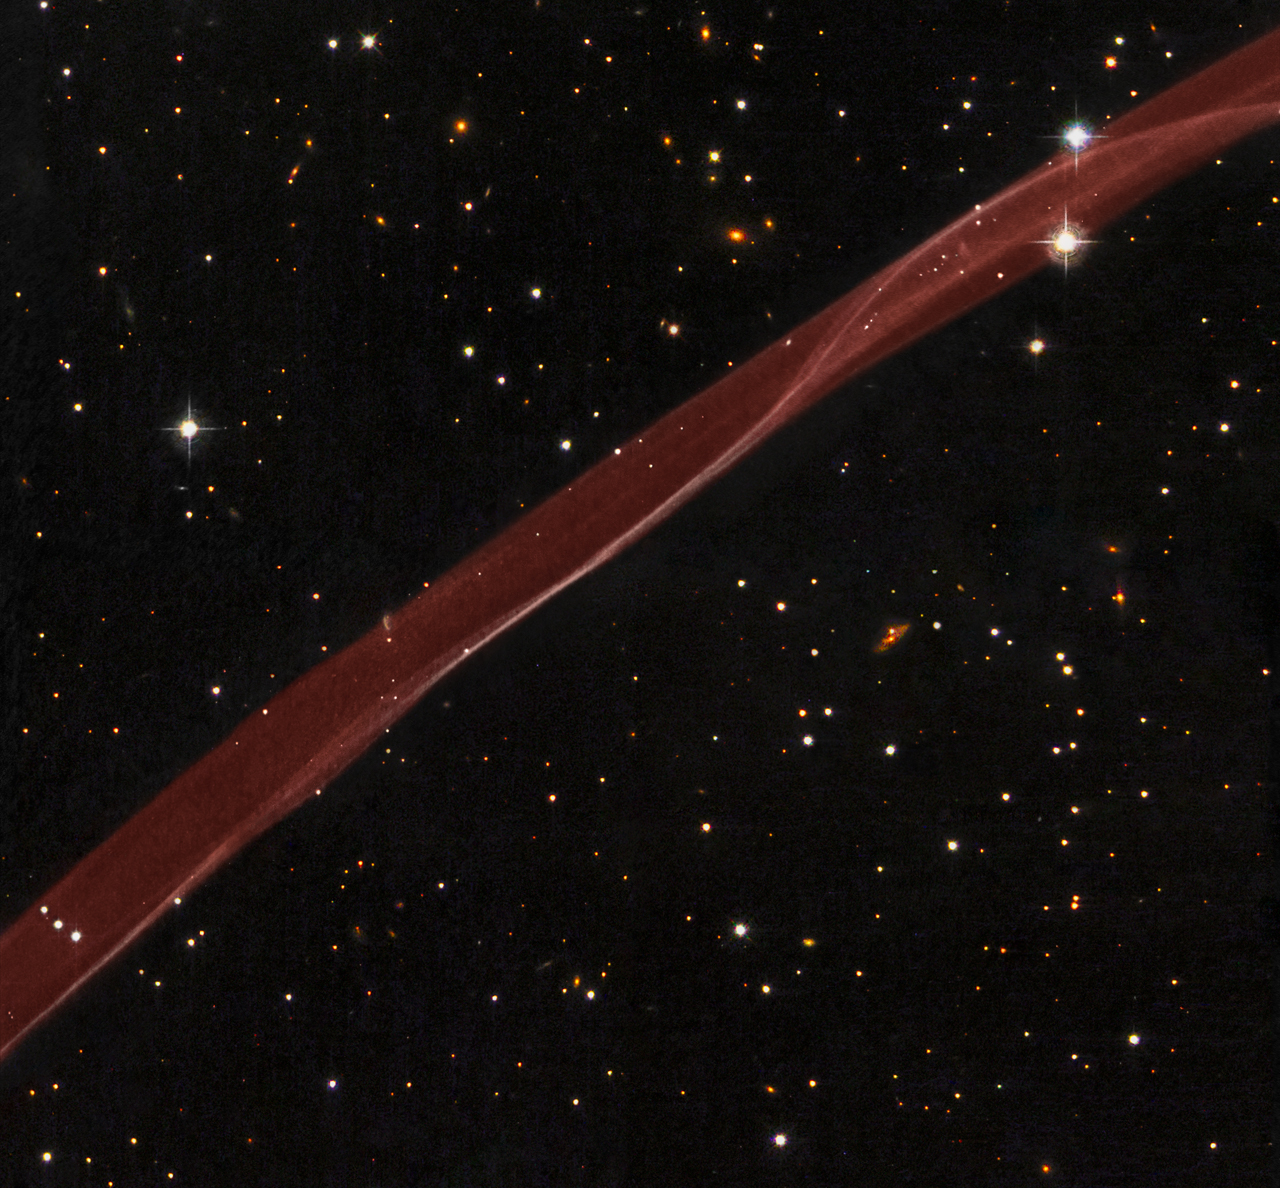 SN 1006: A Supernova Ribbon from Hubble